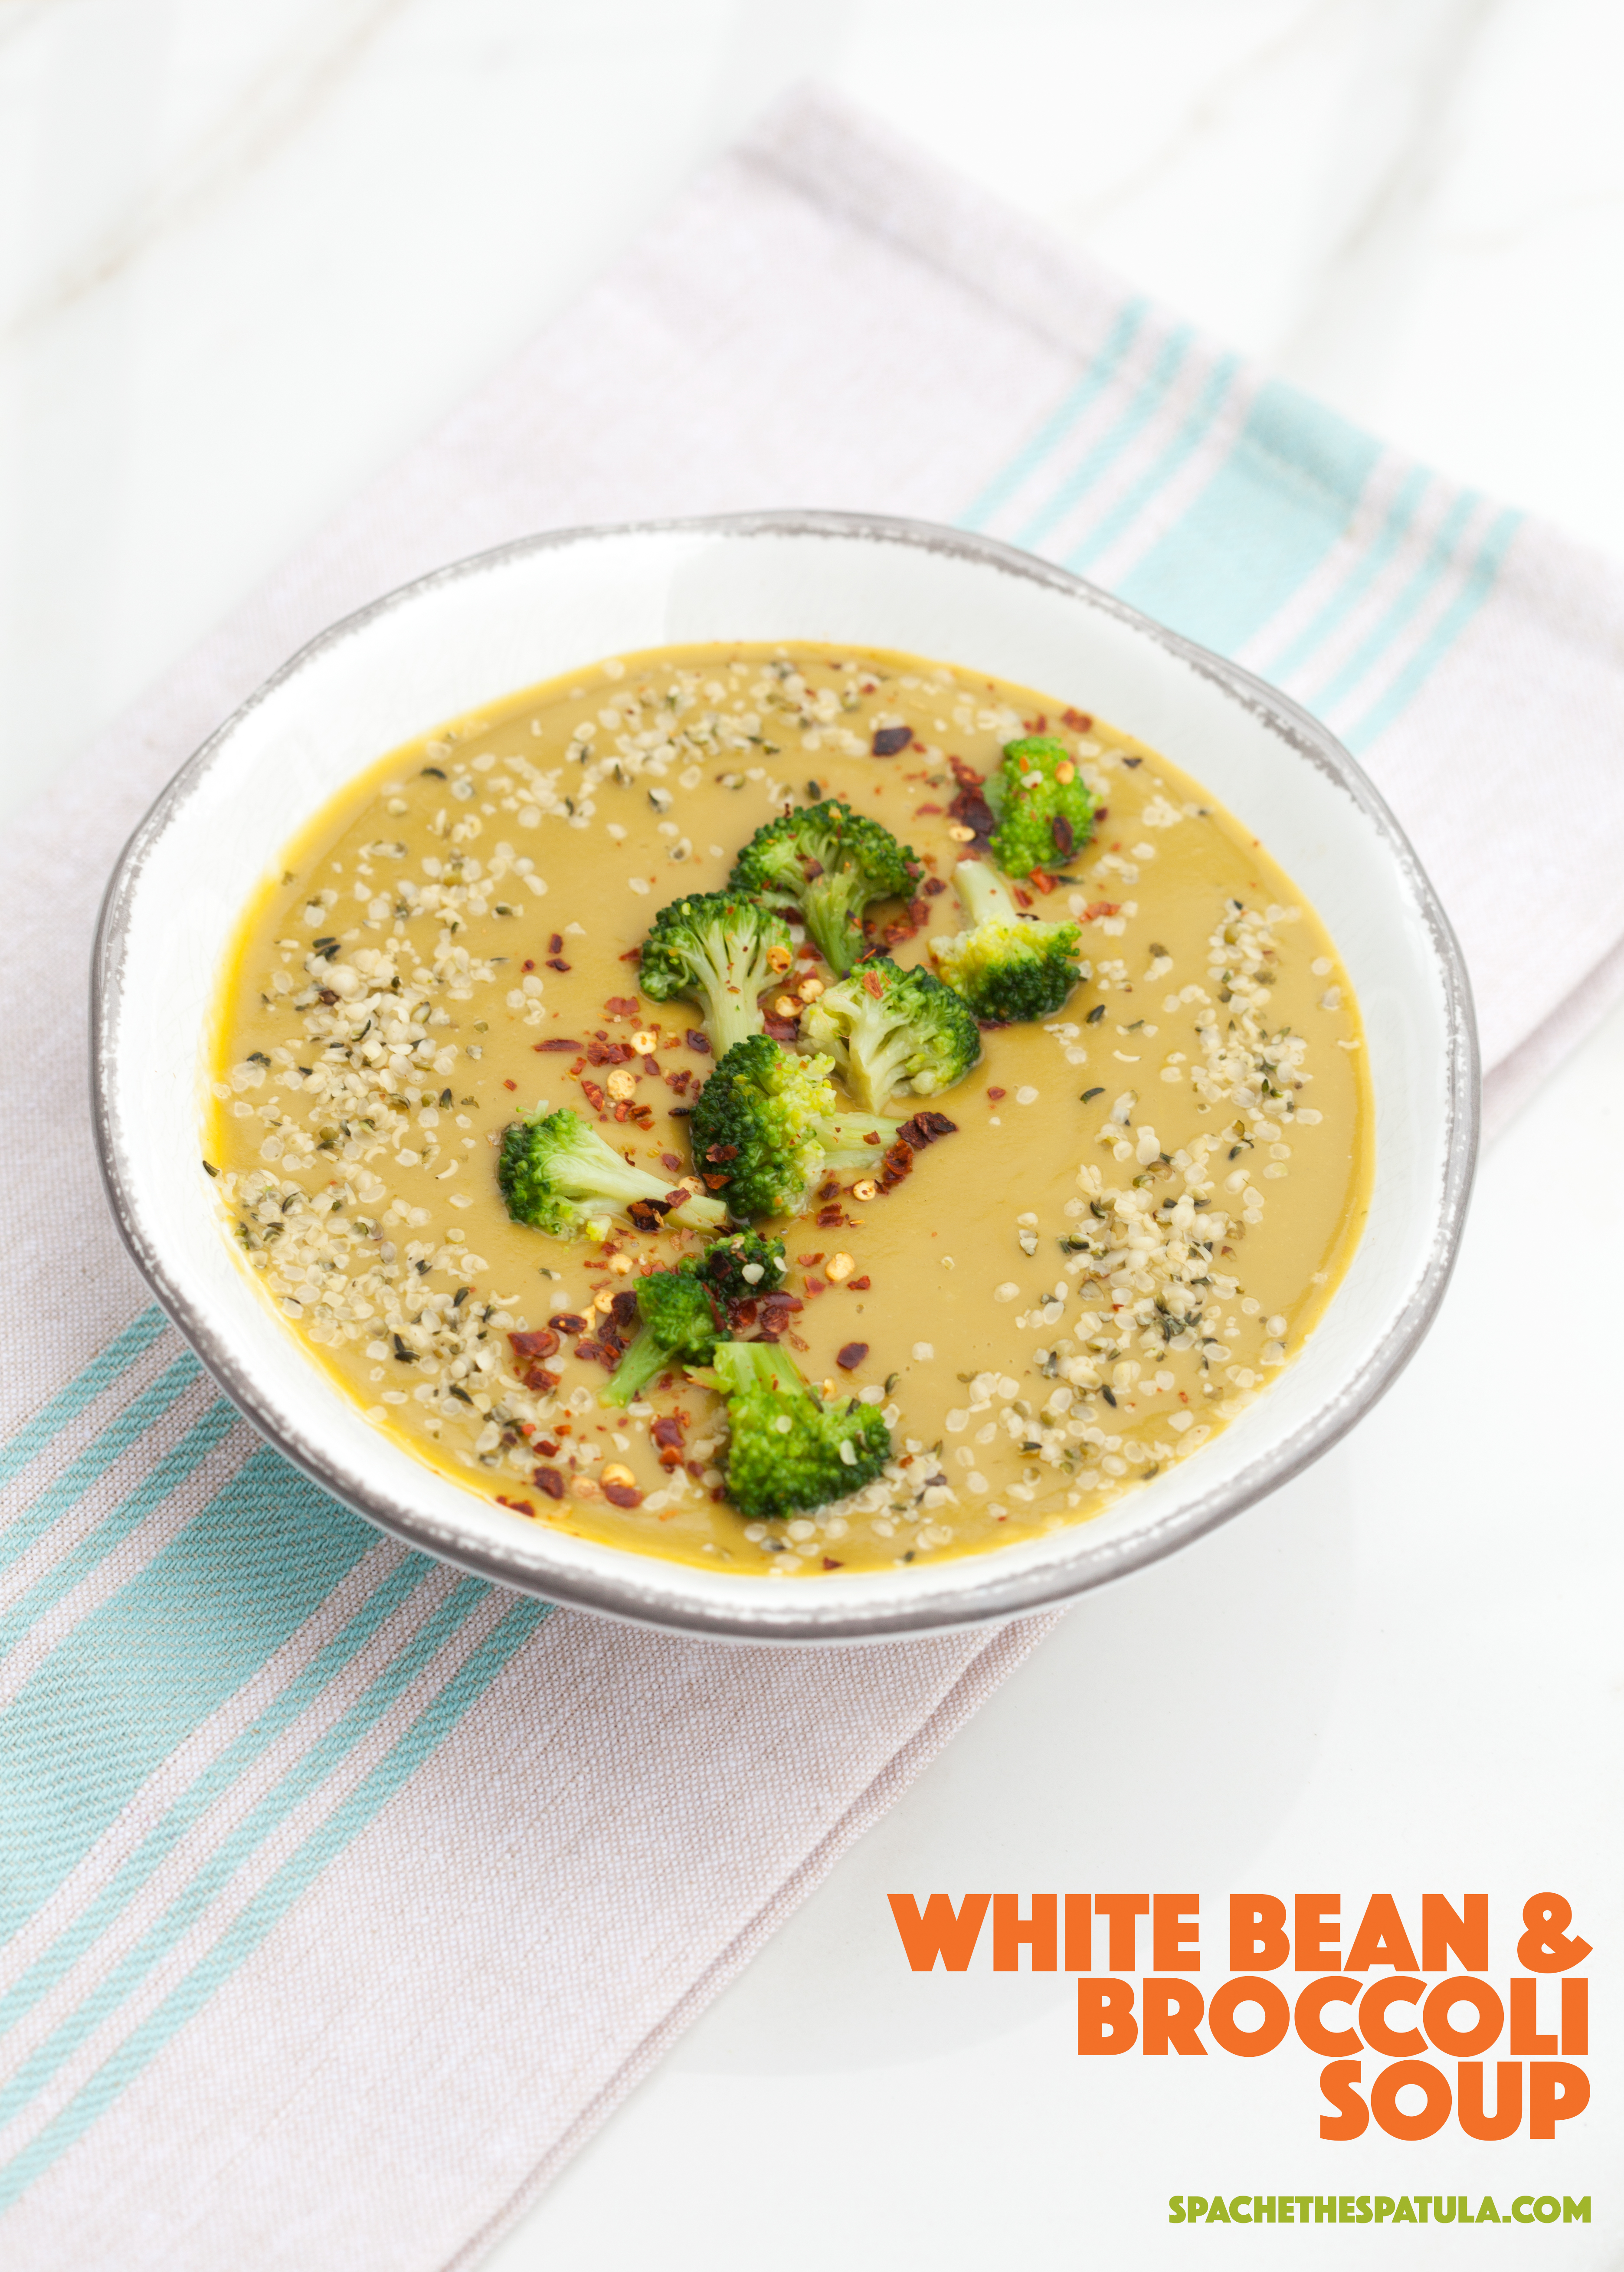 This super tasty broccoli soup gets its creaminess from white beans! | spachethespatula.com #recipe #vegan